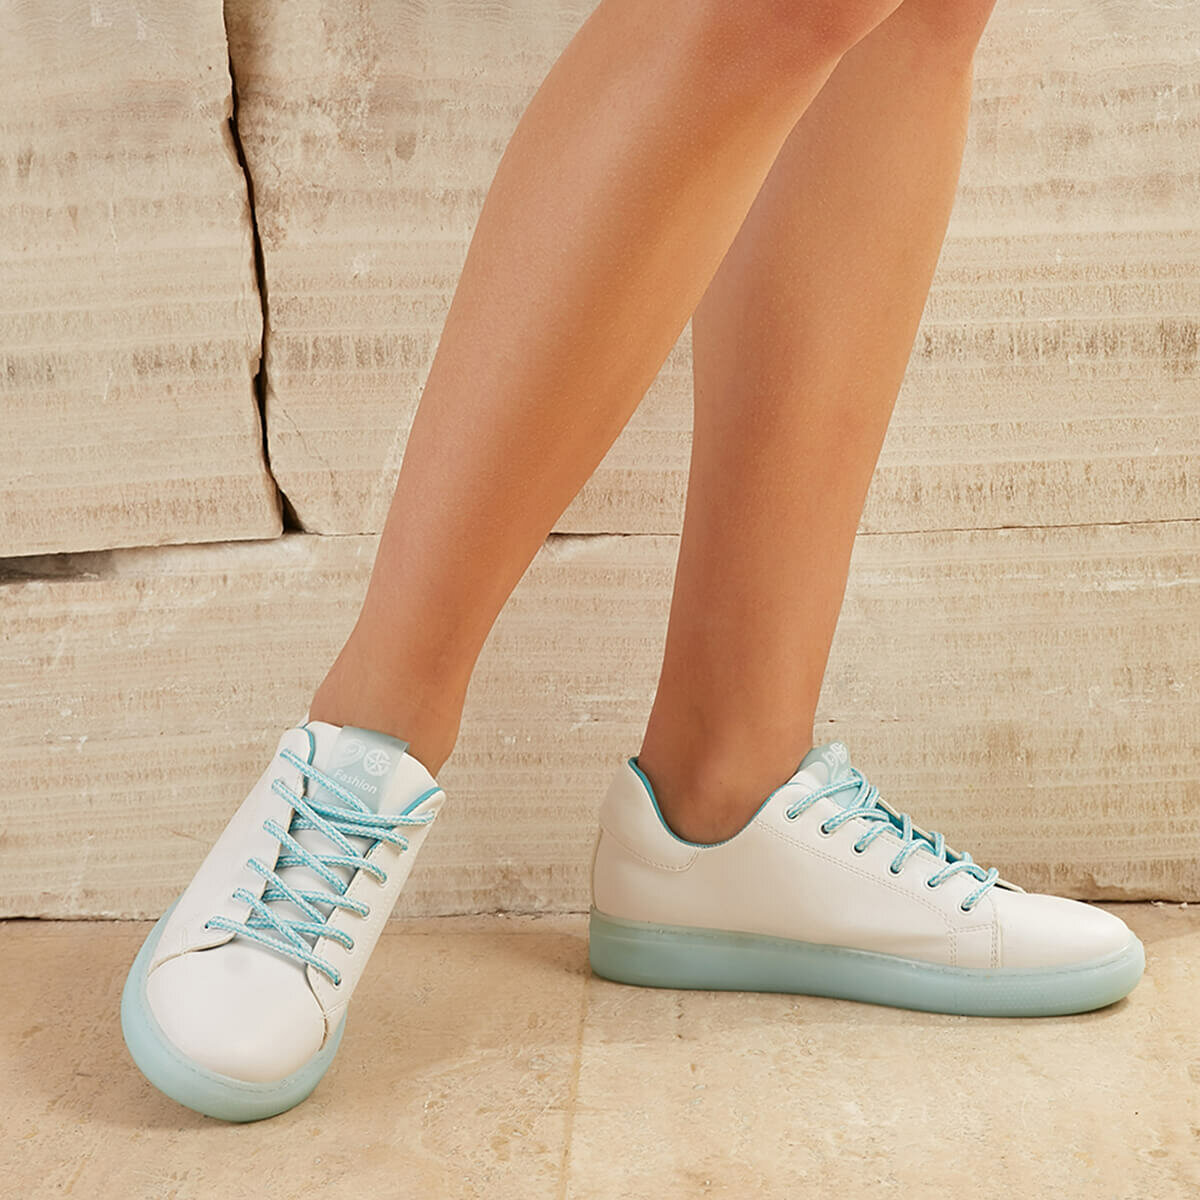 FLO INTER67Z SKIN Blue Women 'S Sneaker Shoes BUTIGO